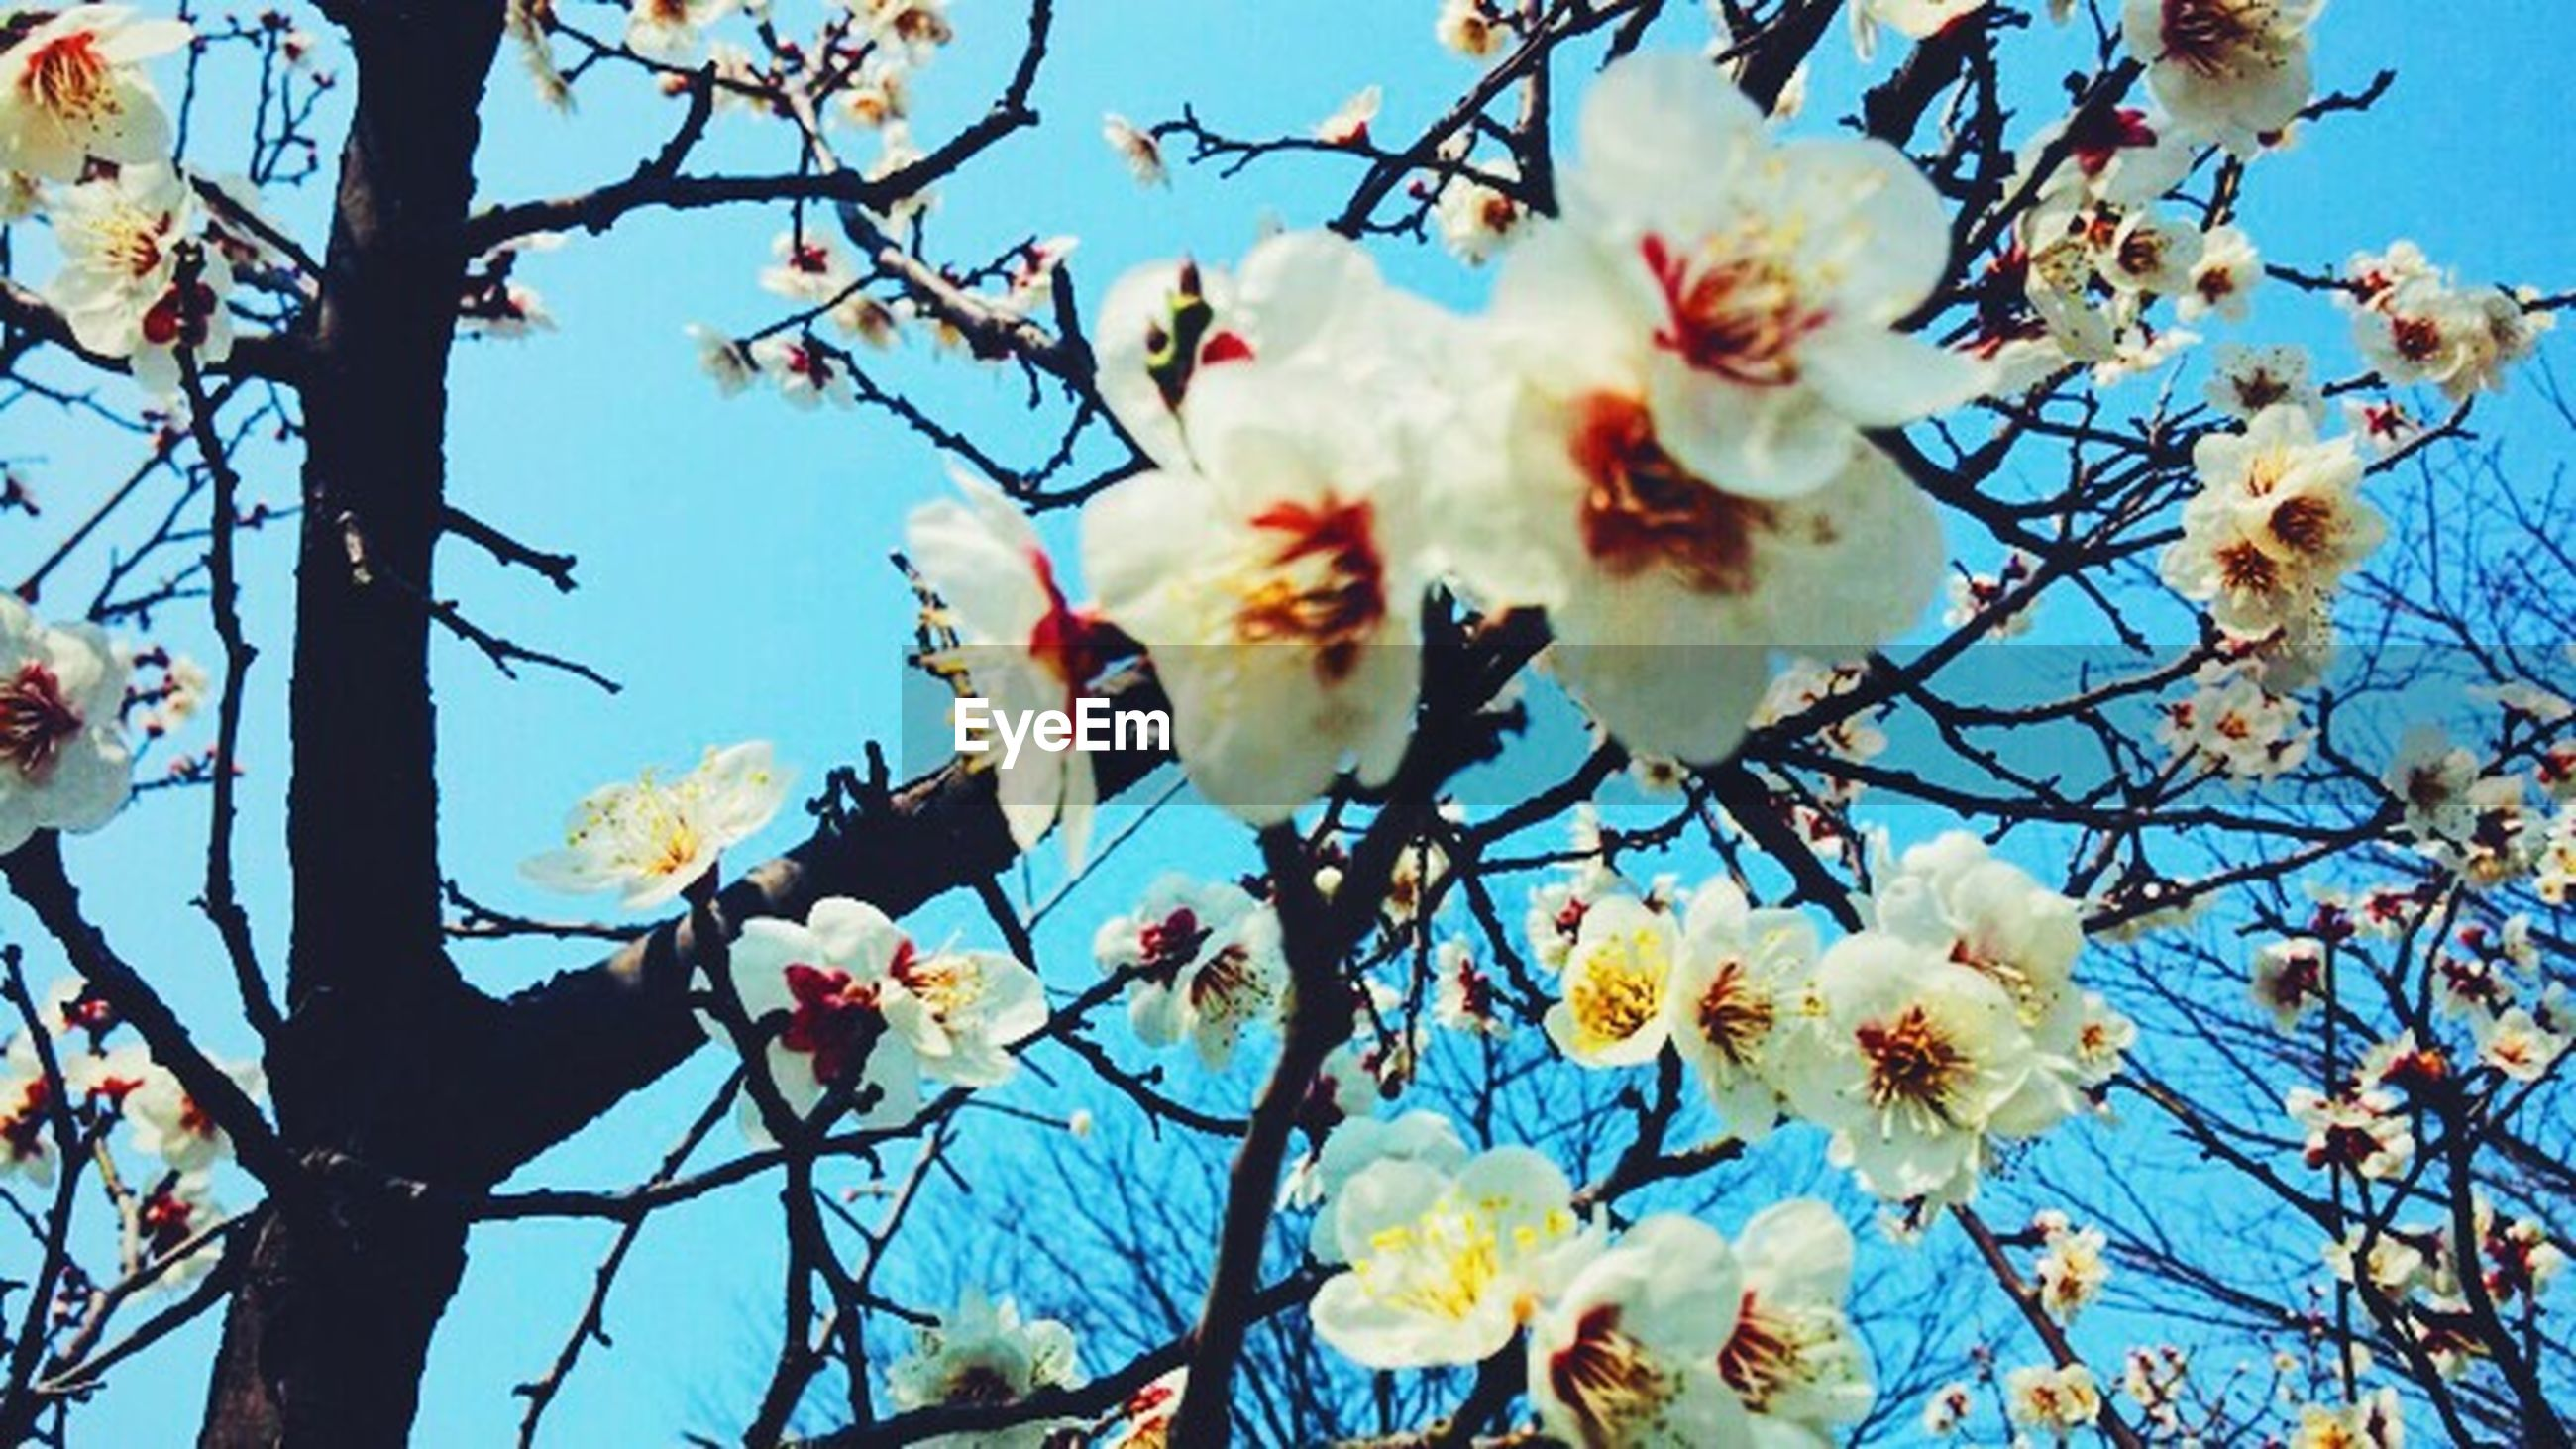 flower, low angle view, fragility, branch, freshness, petal, tree, blue, beauty in nature, white color, nature, blossom, cherry blossom, blooming, sky, growth, clear sky, bird, flower head, day